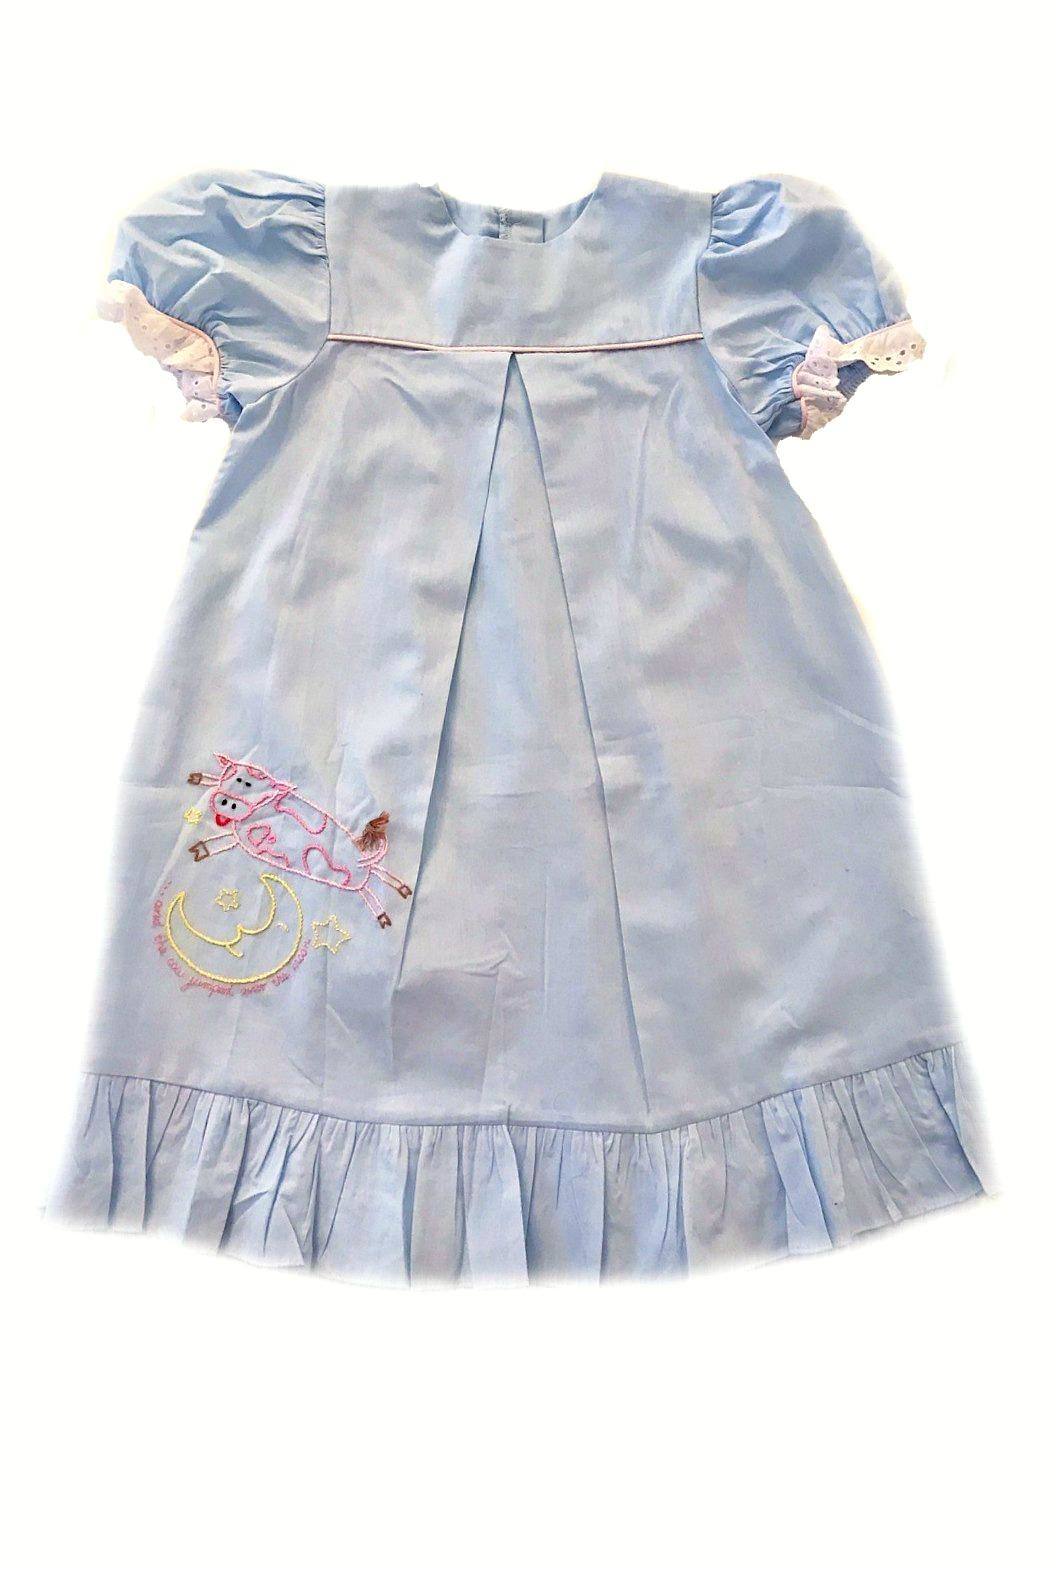 Lullaby Set The-Cow-Jumped-Over-The-Moon-Loungewear-Gown - Main Image